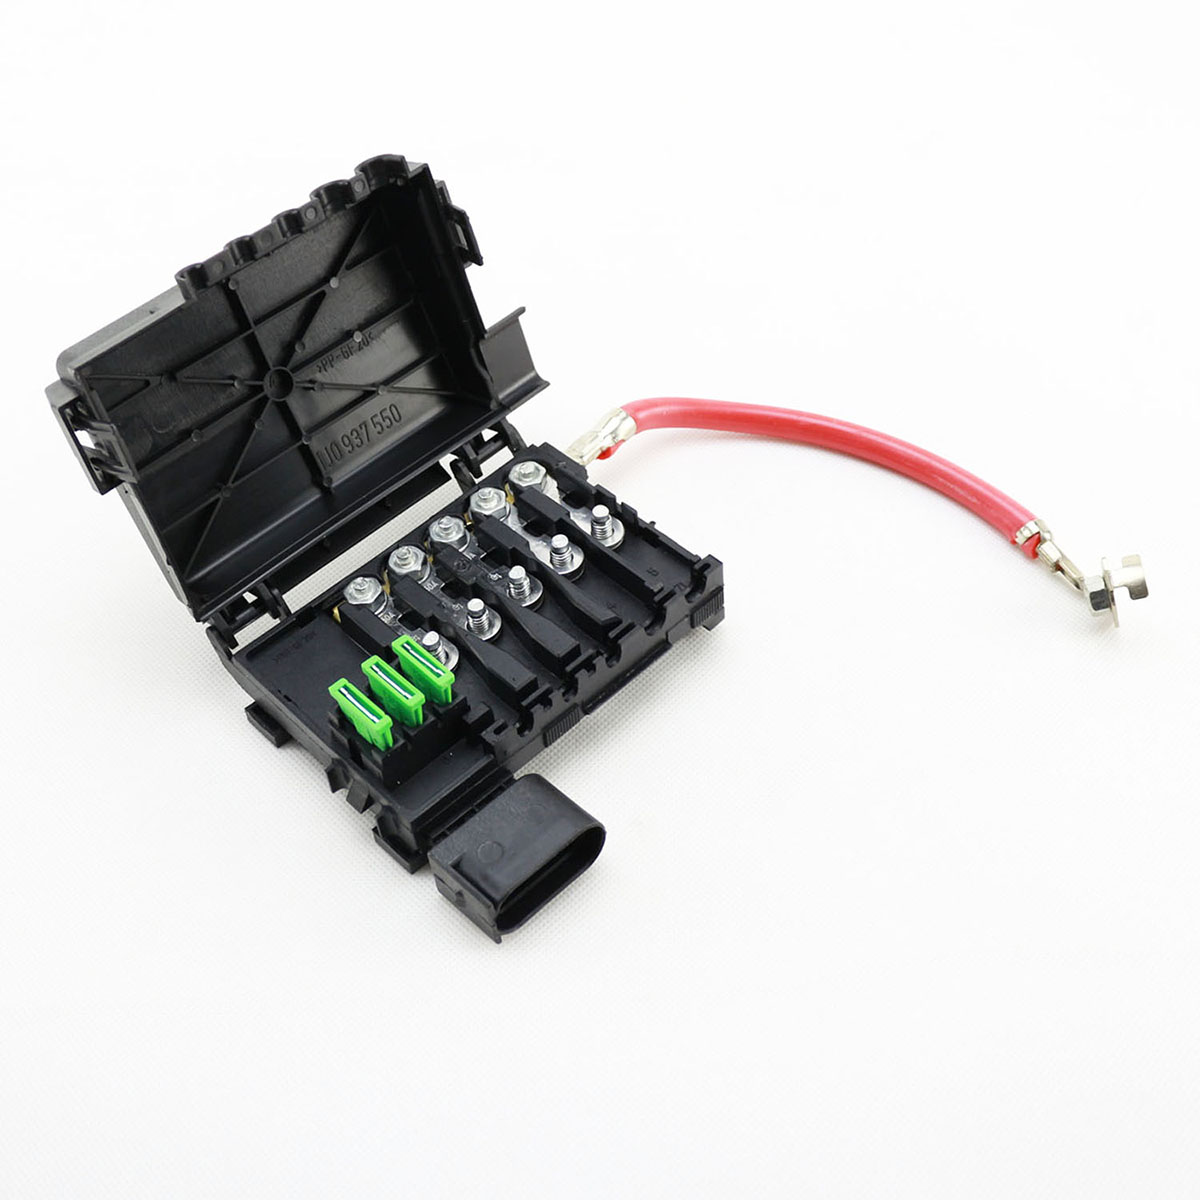 compare prices on battery fuse box online shopping buy low price new battery terminal fuse box holder for vw jetta golf mk4 bora beetle